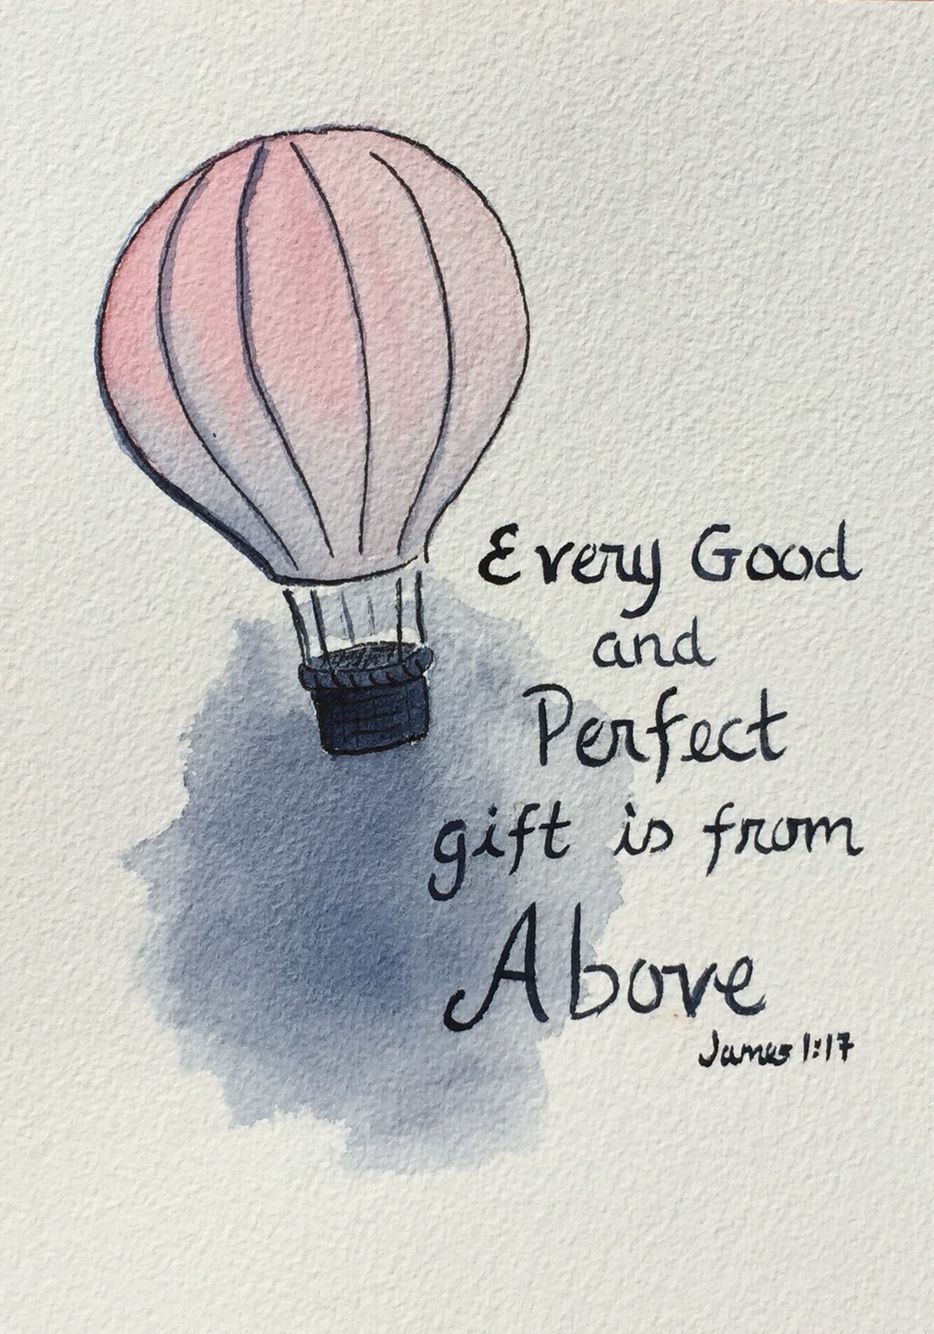 Hot Air Balloon Scripture Watercolor Original Art 28